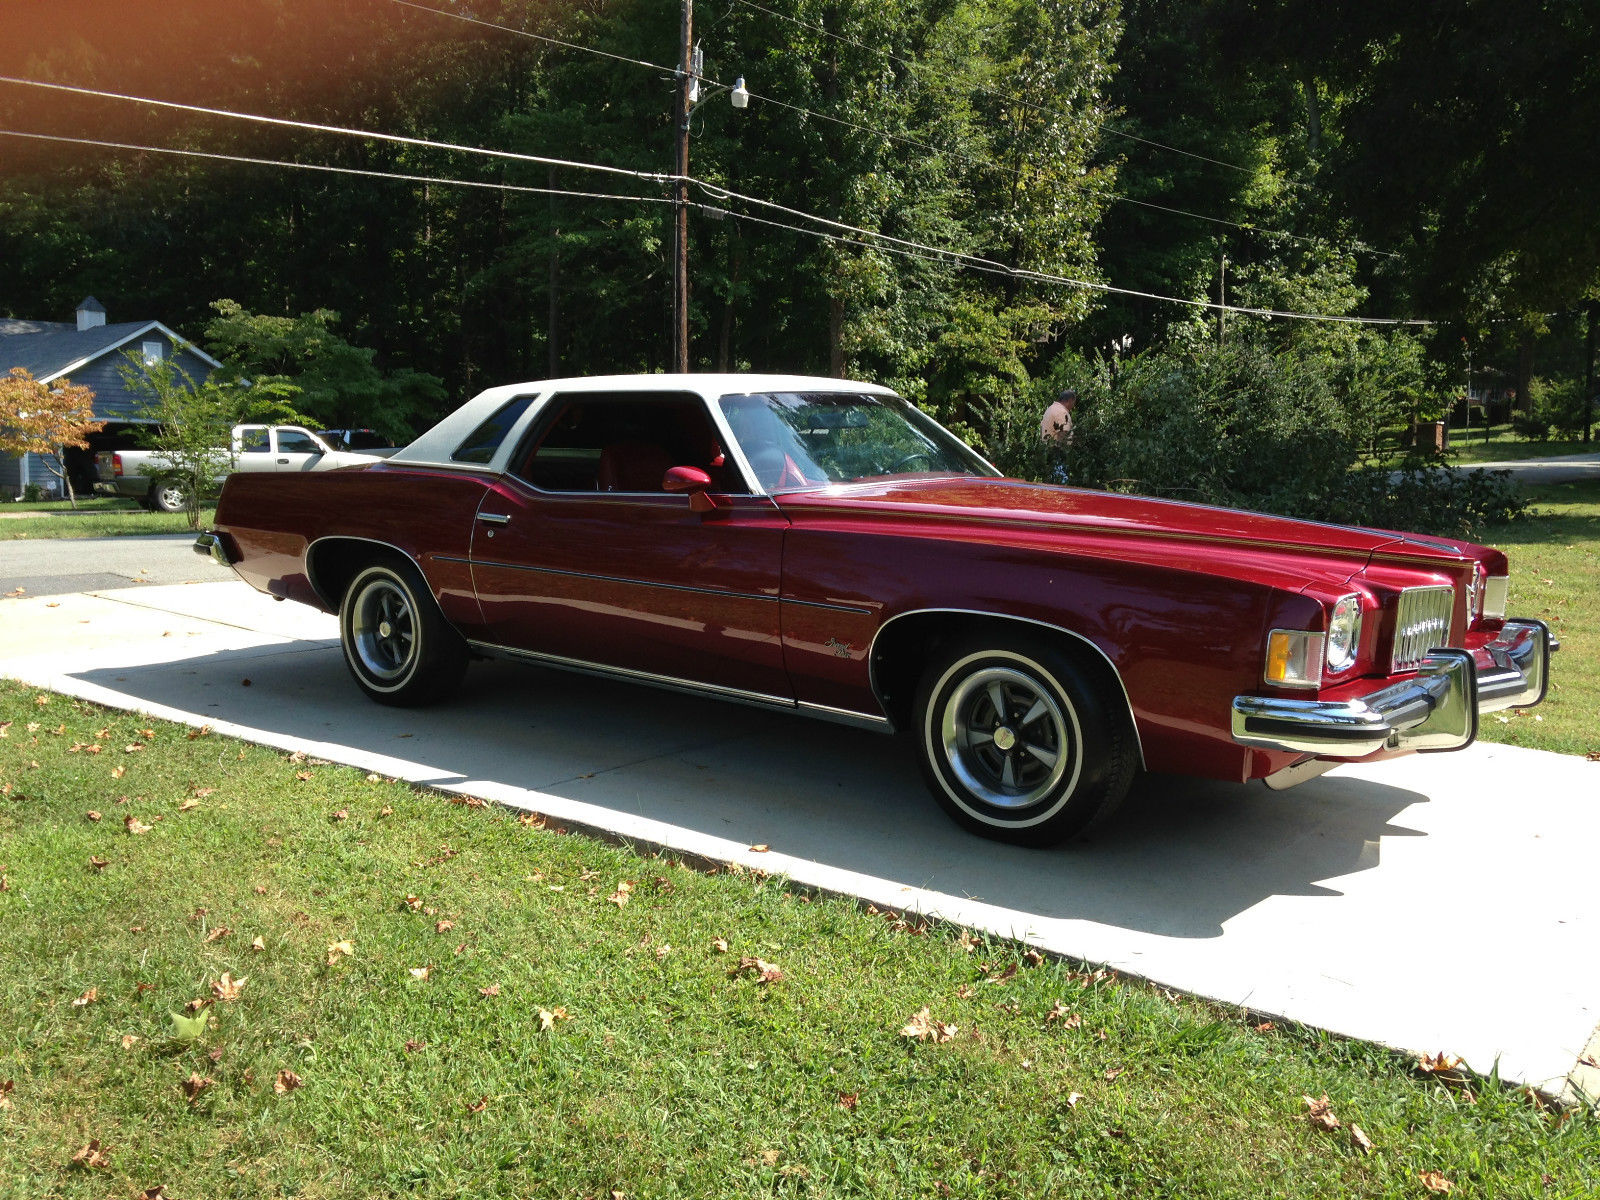 1973 Pontiac Grand Prix Model J